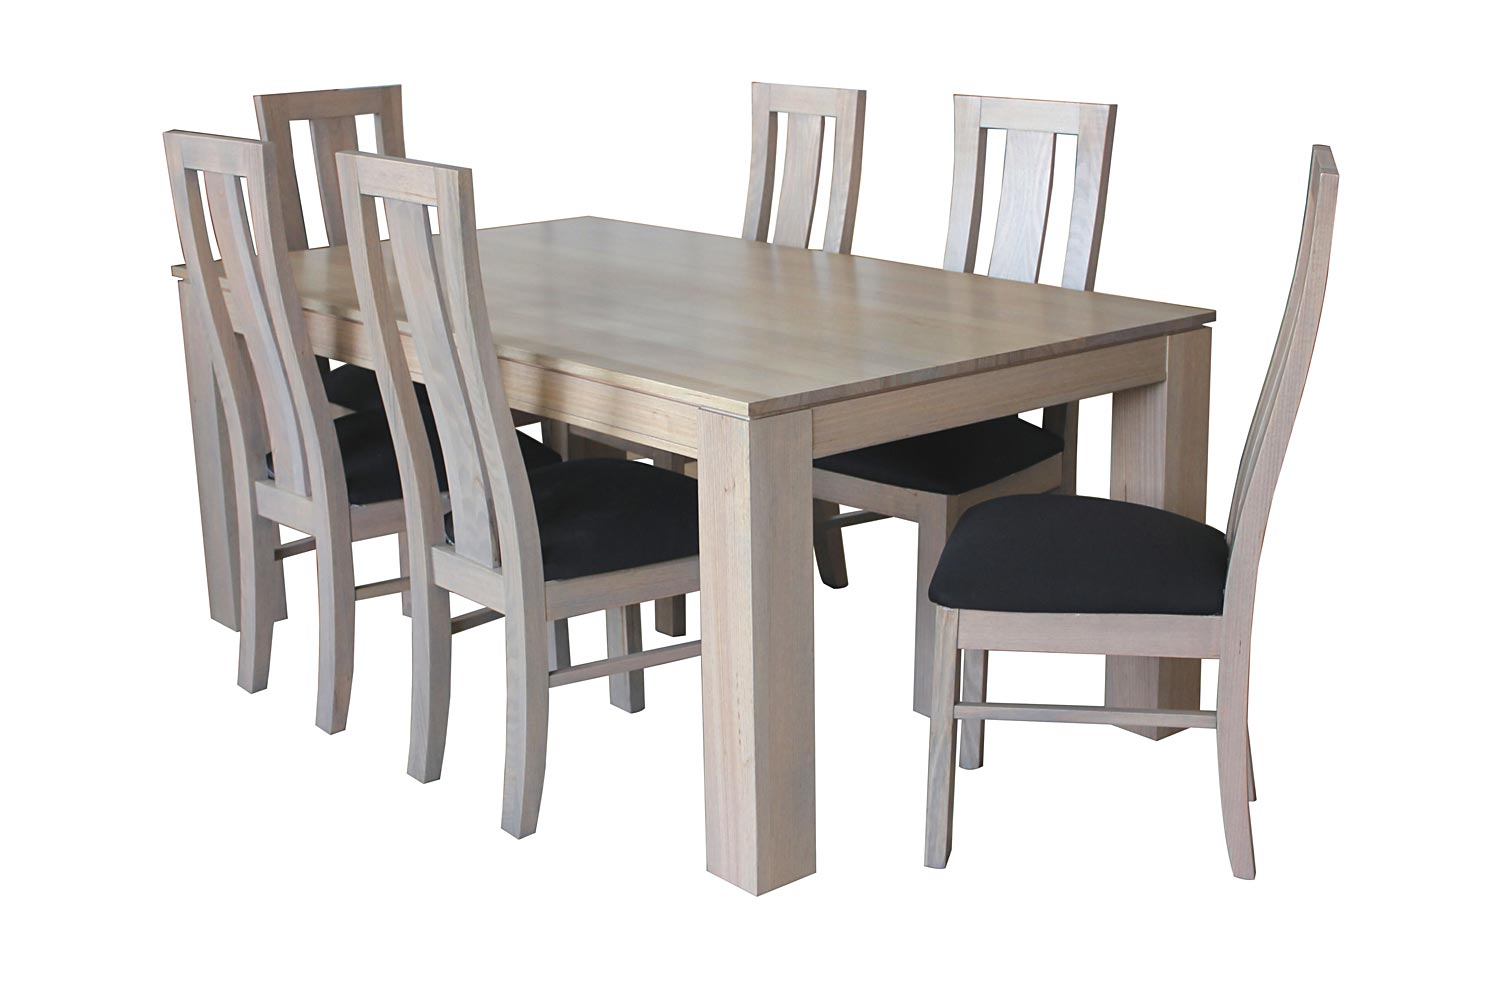 KINGSTON DINING SETTING